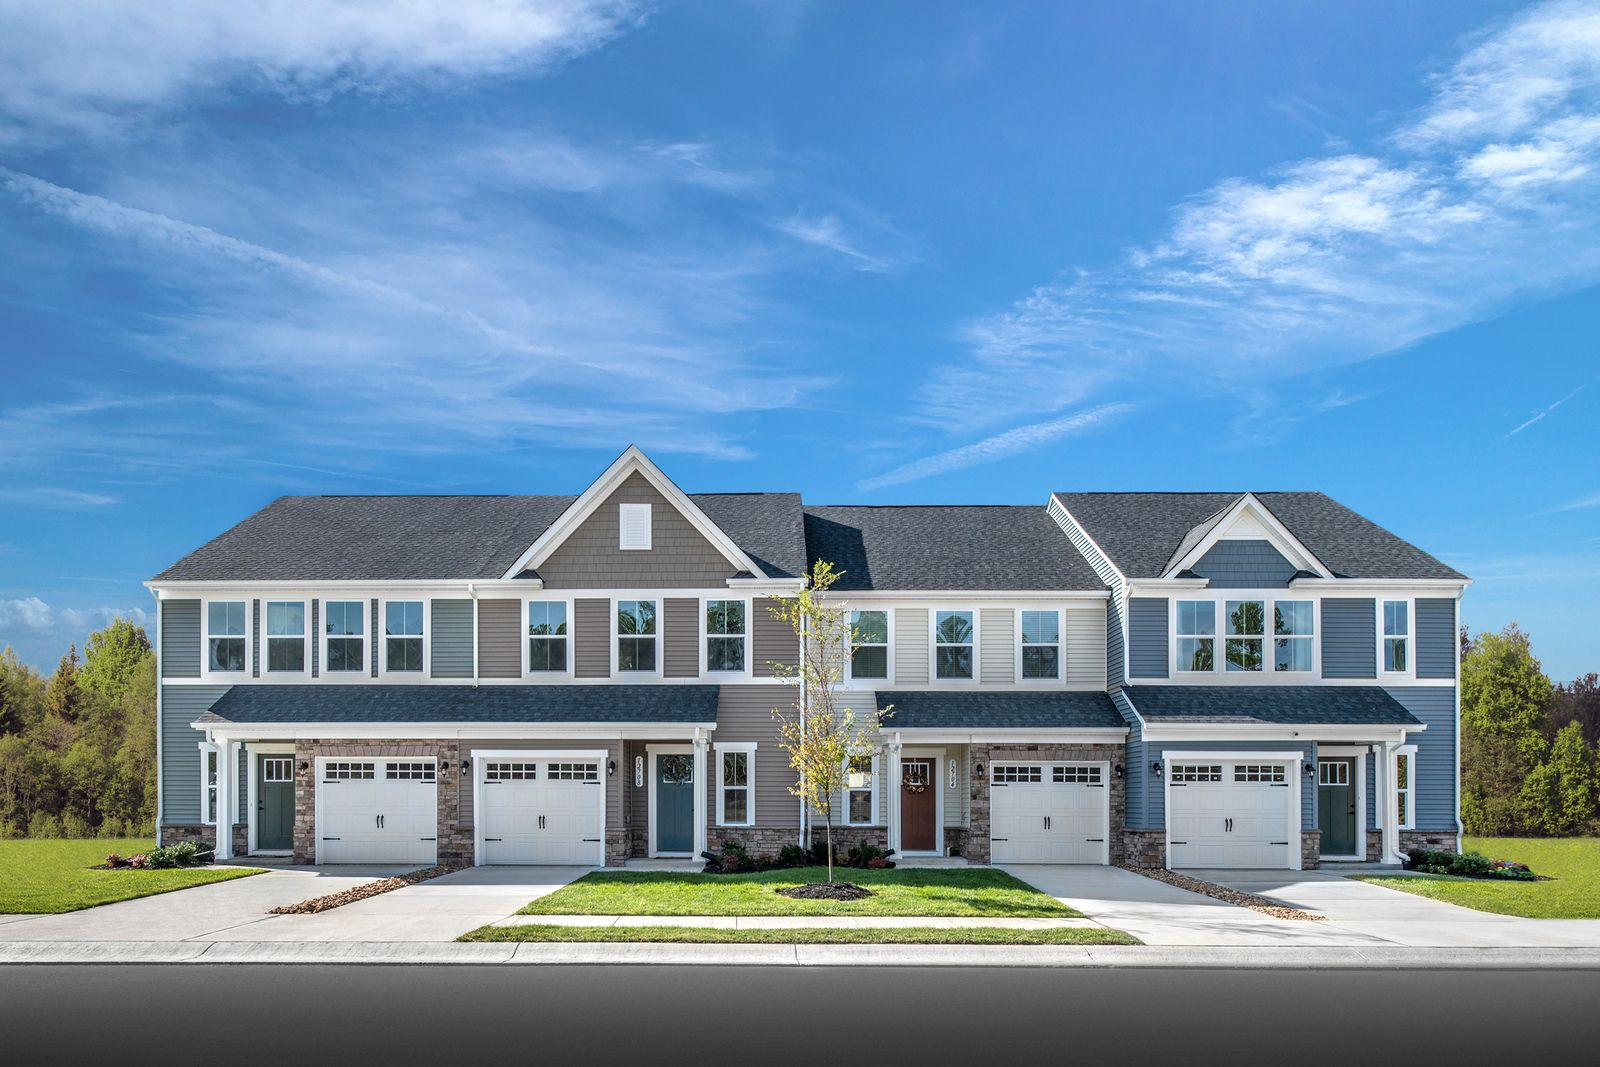 Parkview Preserve - New Townhomes Near Downtown Nashville:Premier townhome communitywith garages, modern, open concepts, and minutes to I-65 & downtown Nashville.Click here to schedule a visit!